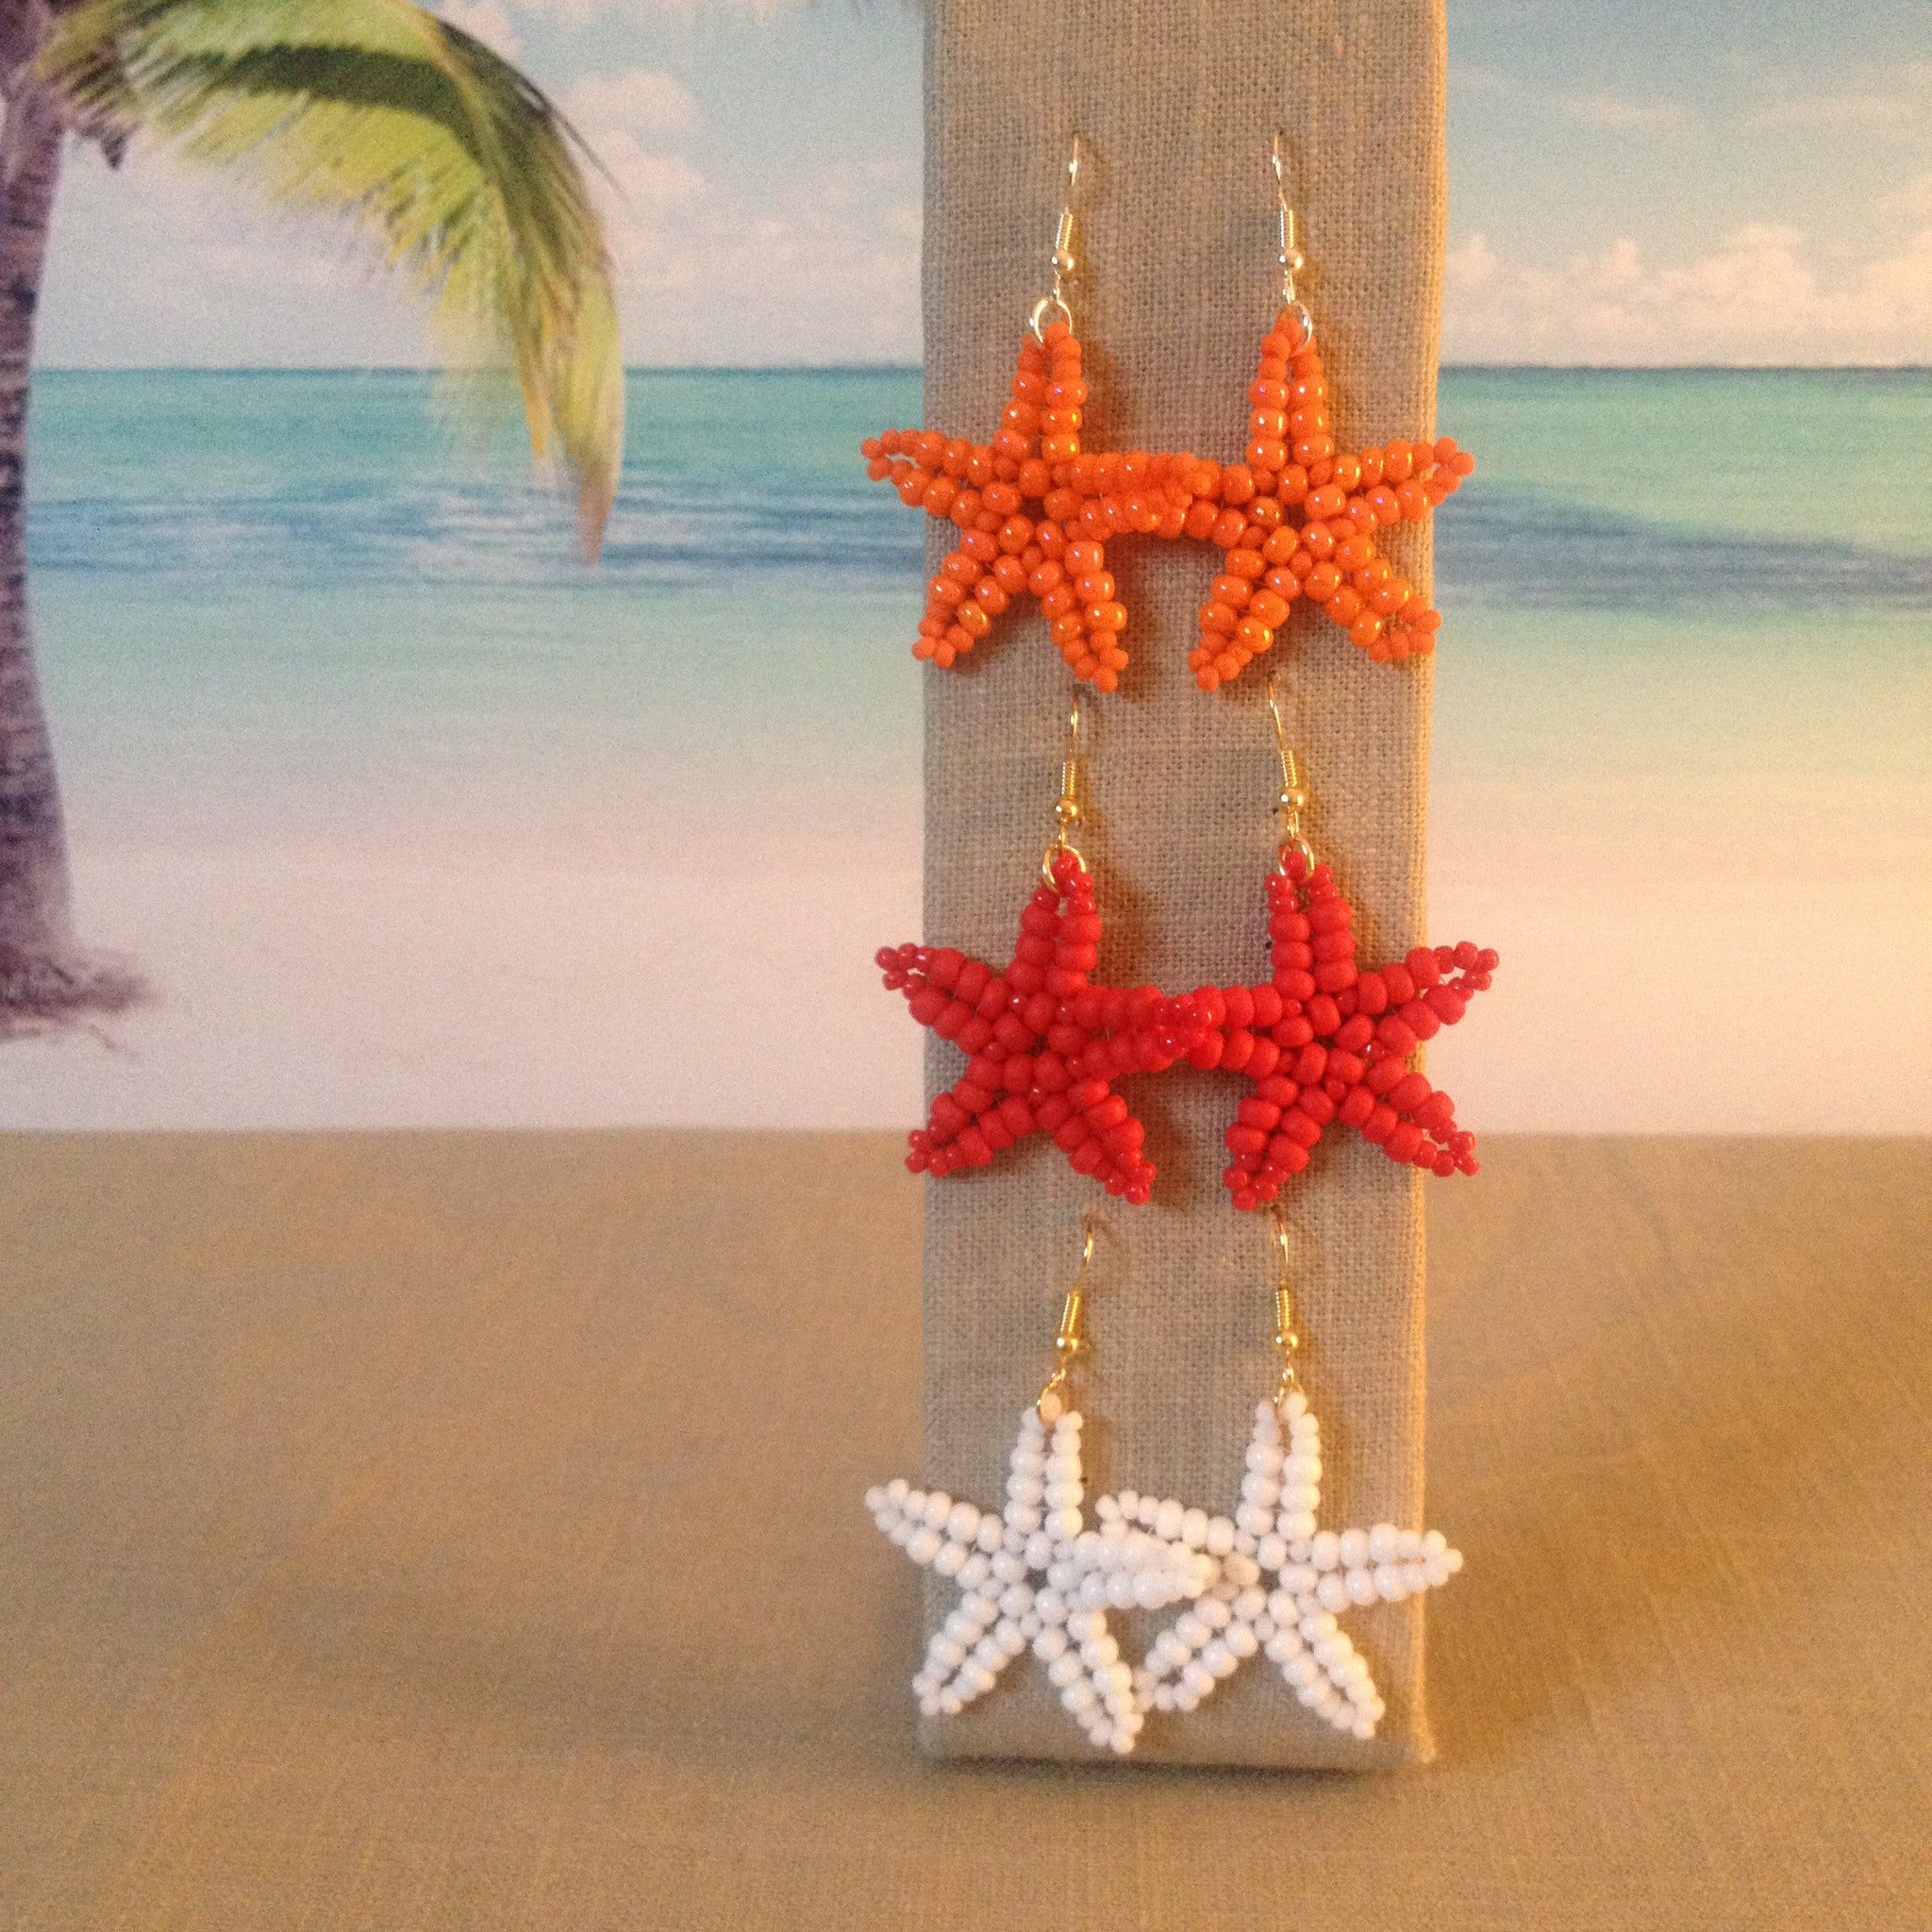 Starfish Earrings available in 17 Vibrant Colors